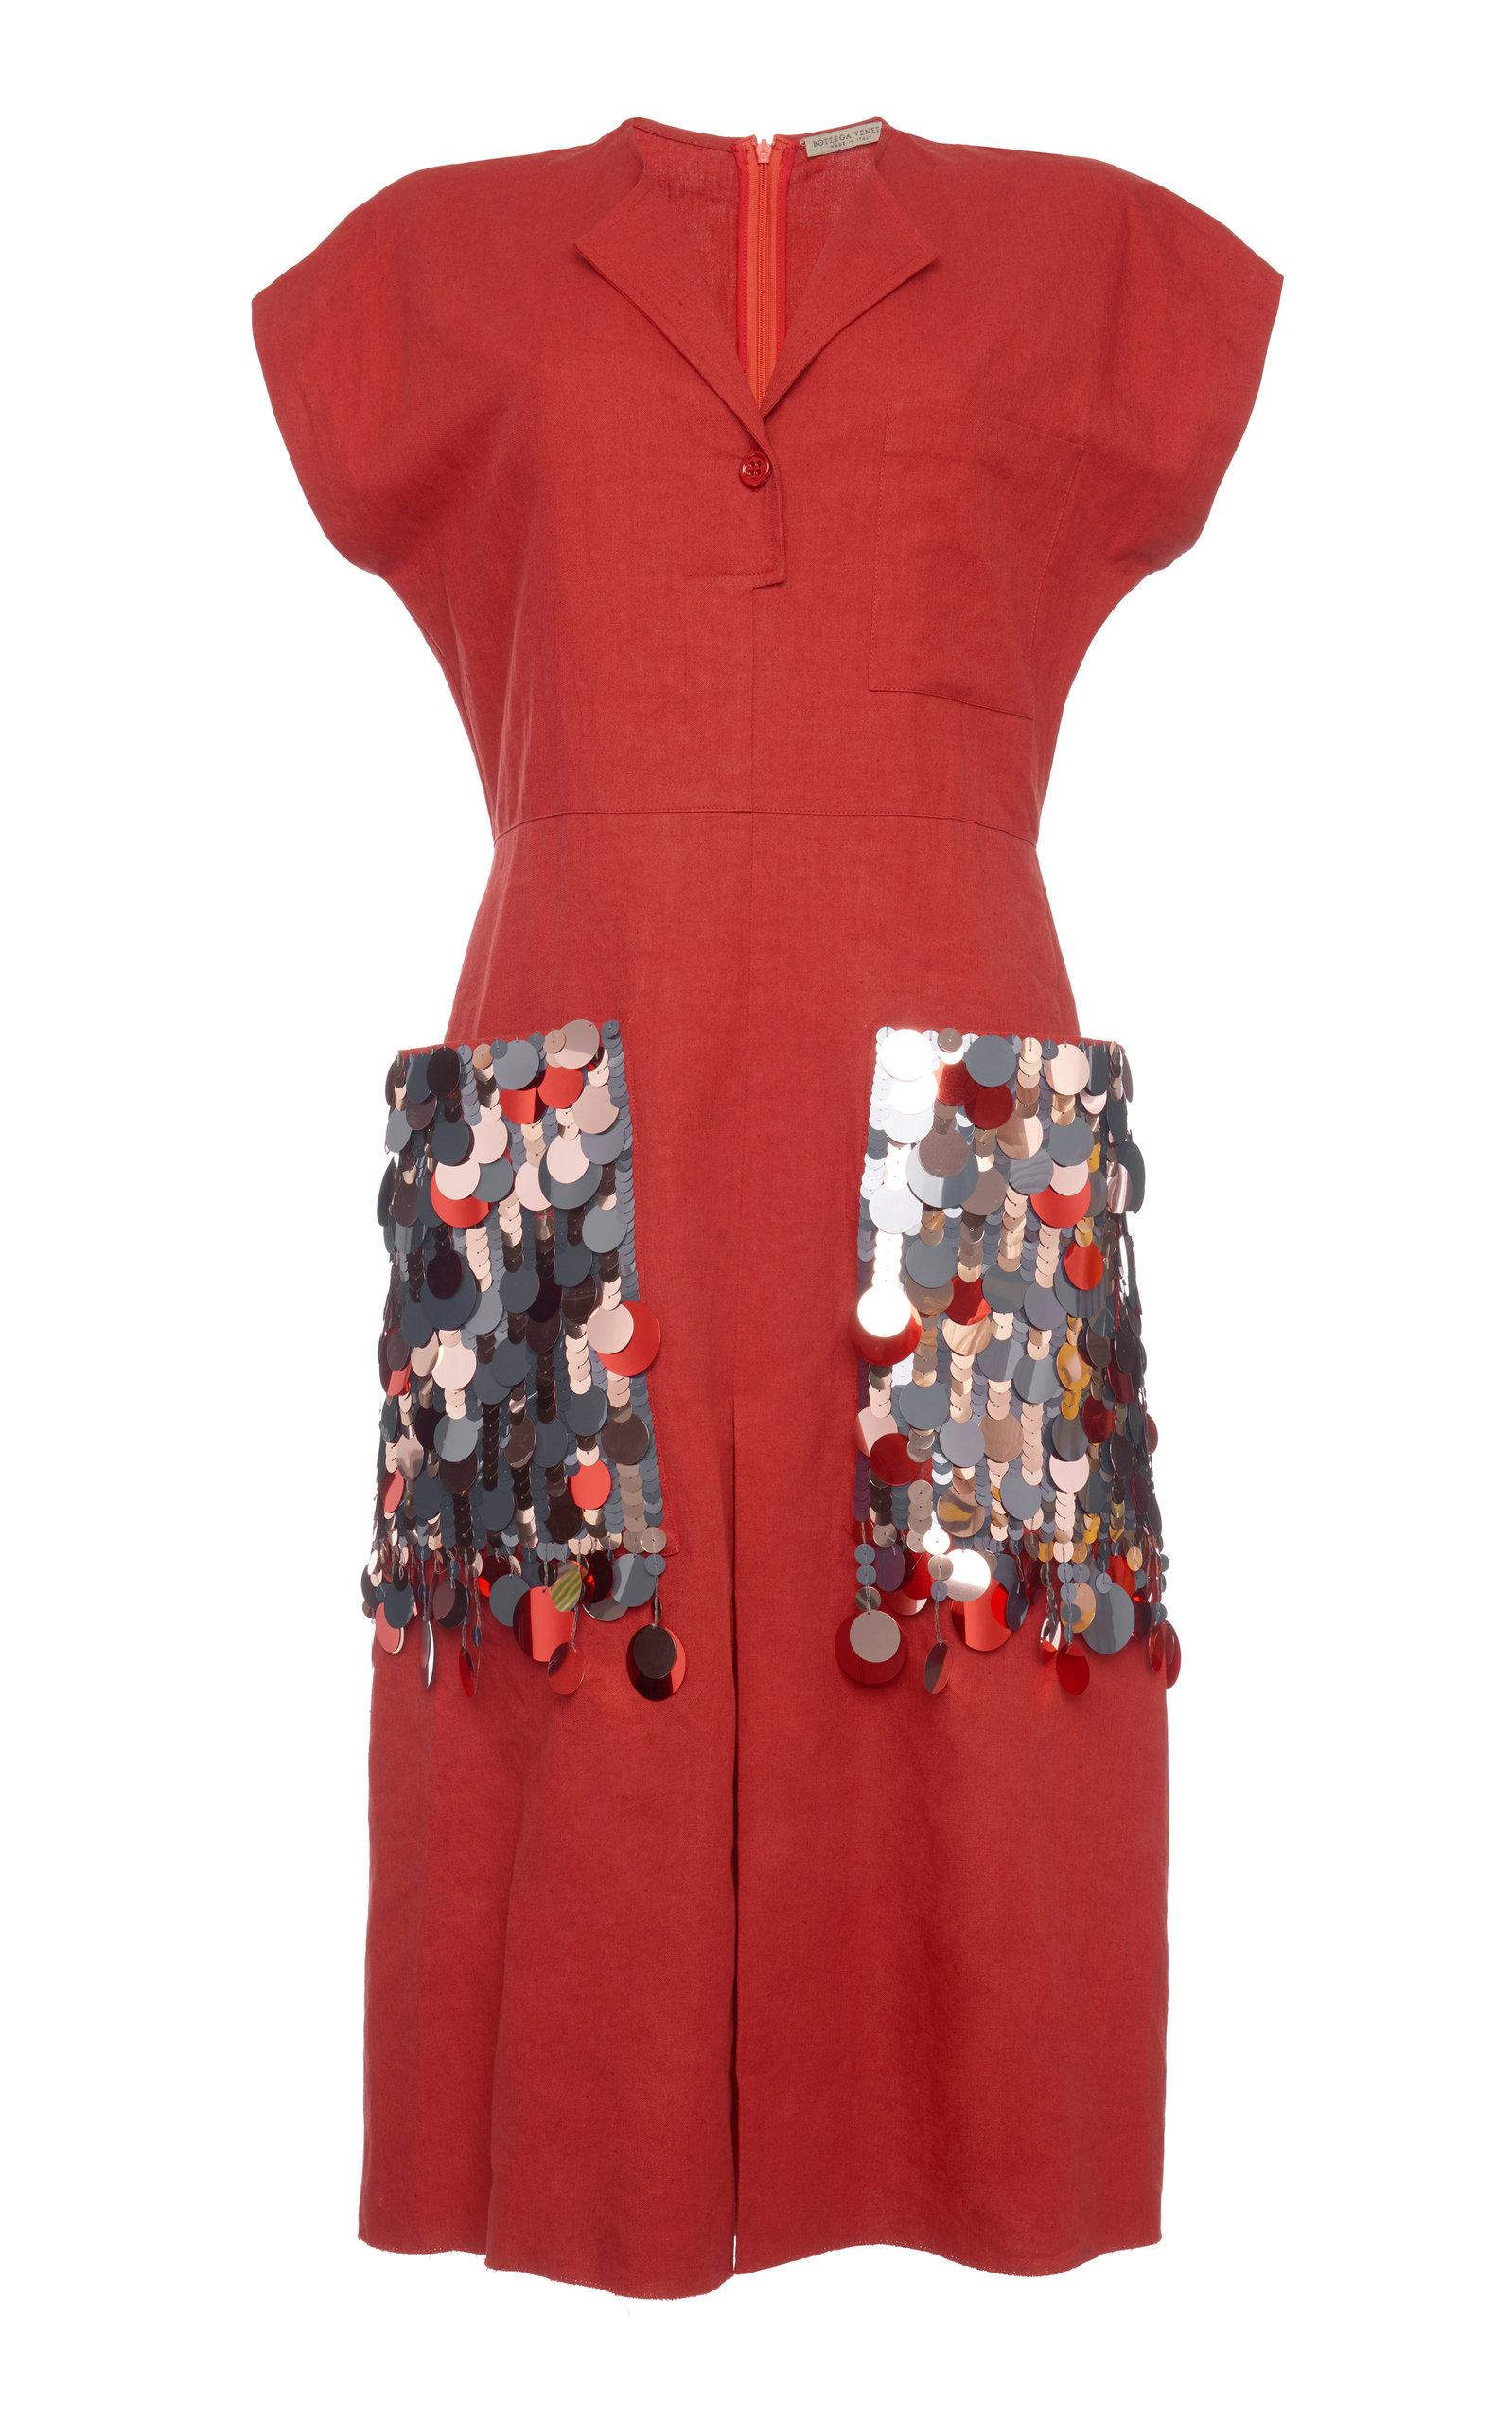 Bottega Veneta Paillette-embellished Cotton-blend Dress In Red